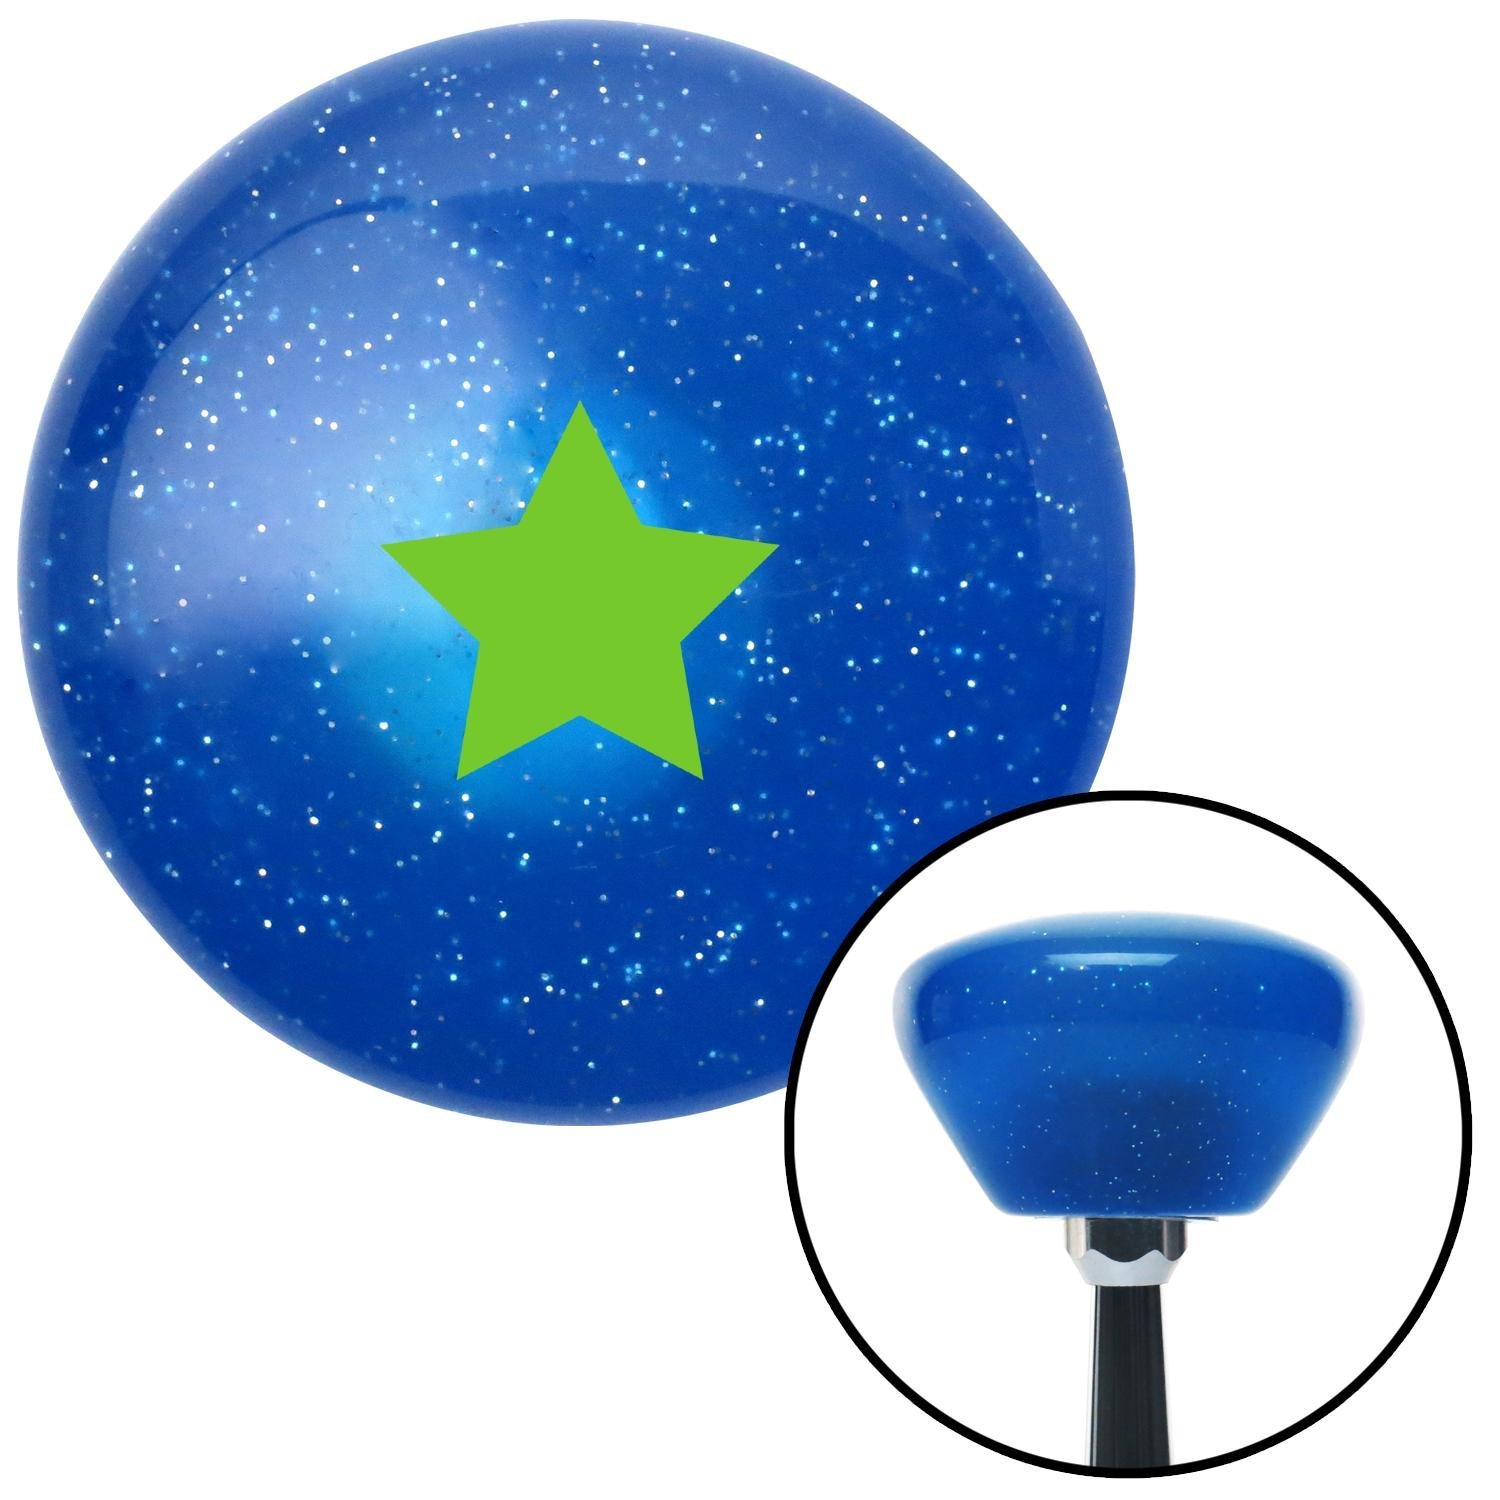 American Shifter 289420 Shift Knob Green Star Blue Retro Metal Flake with M16 x 1.5 Insert